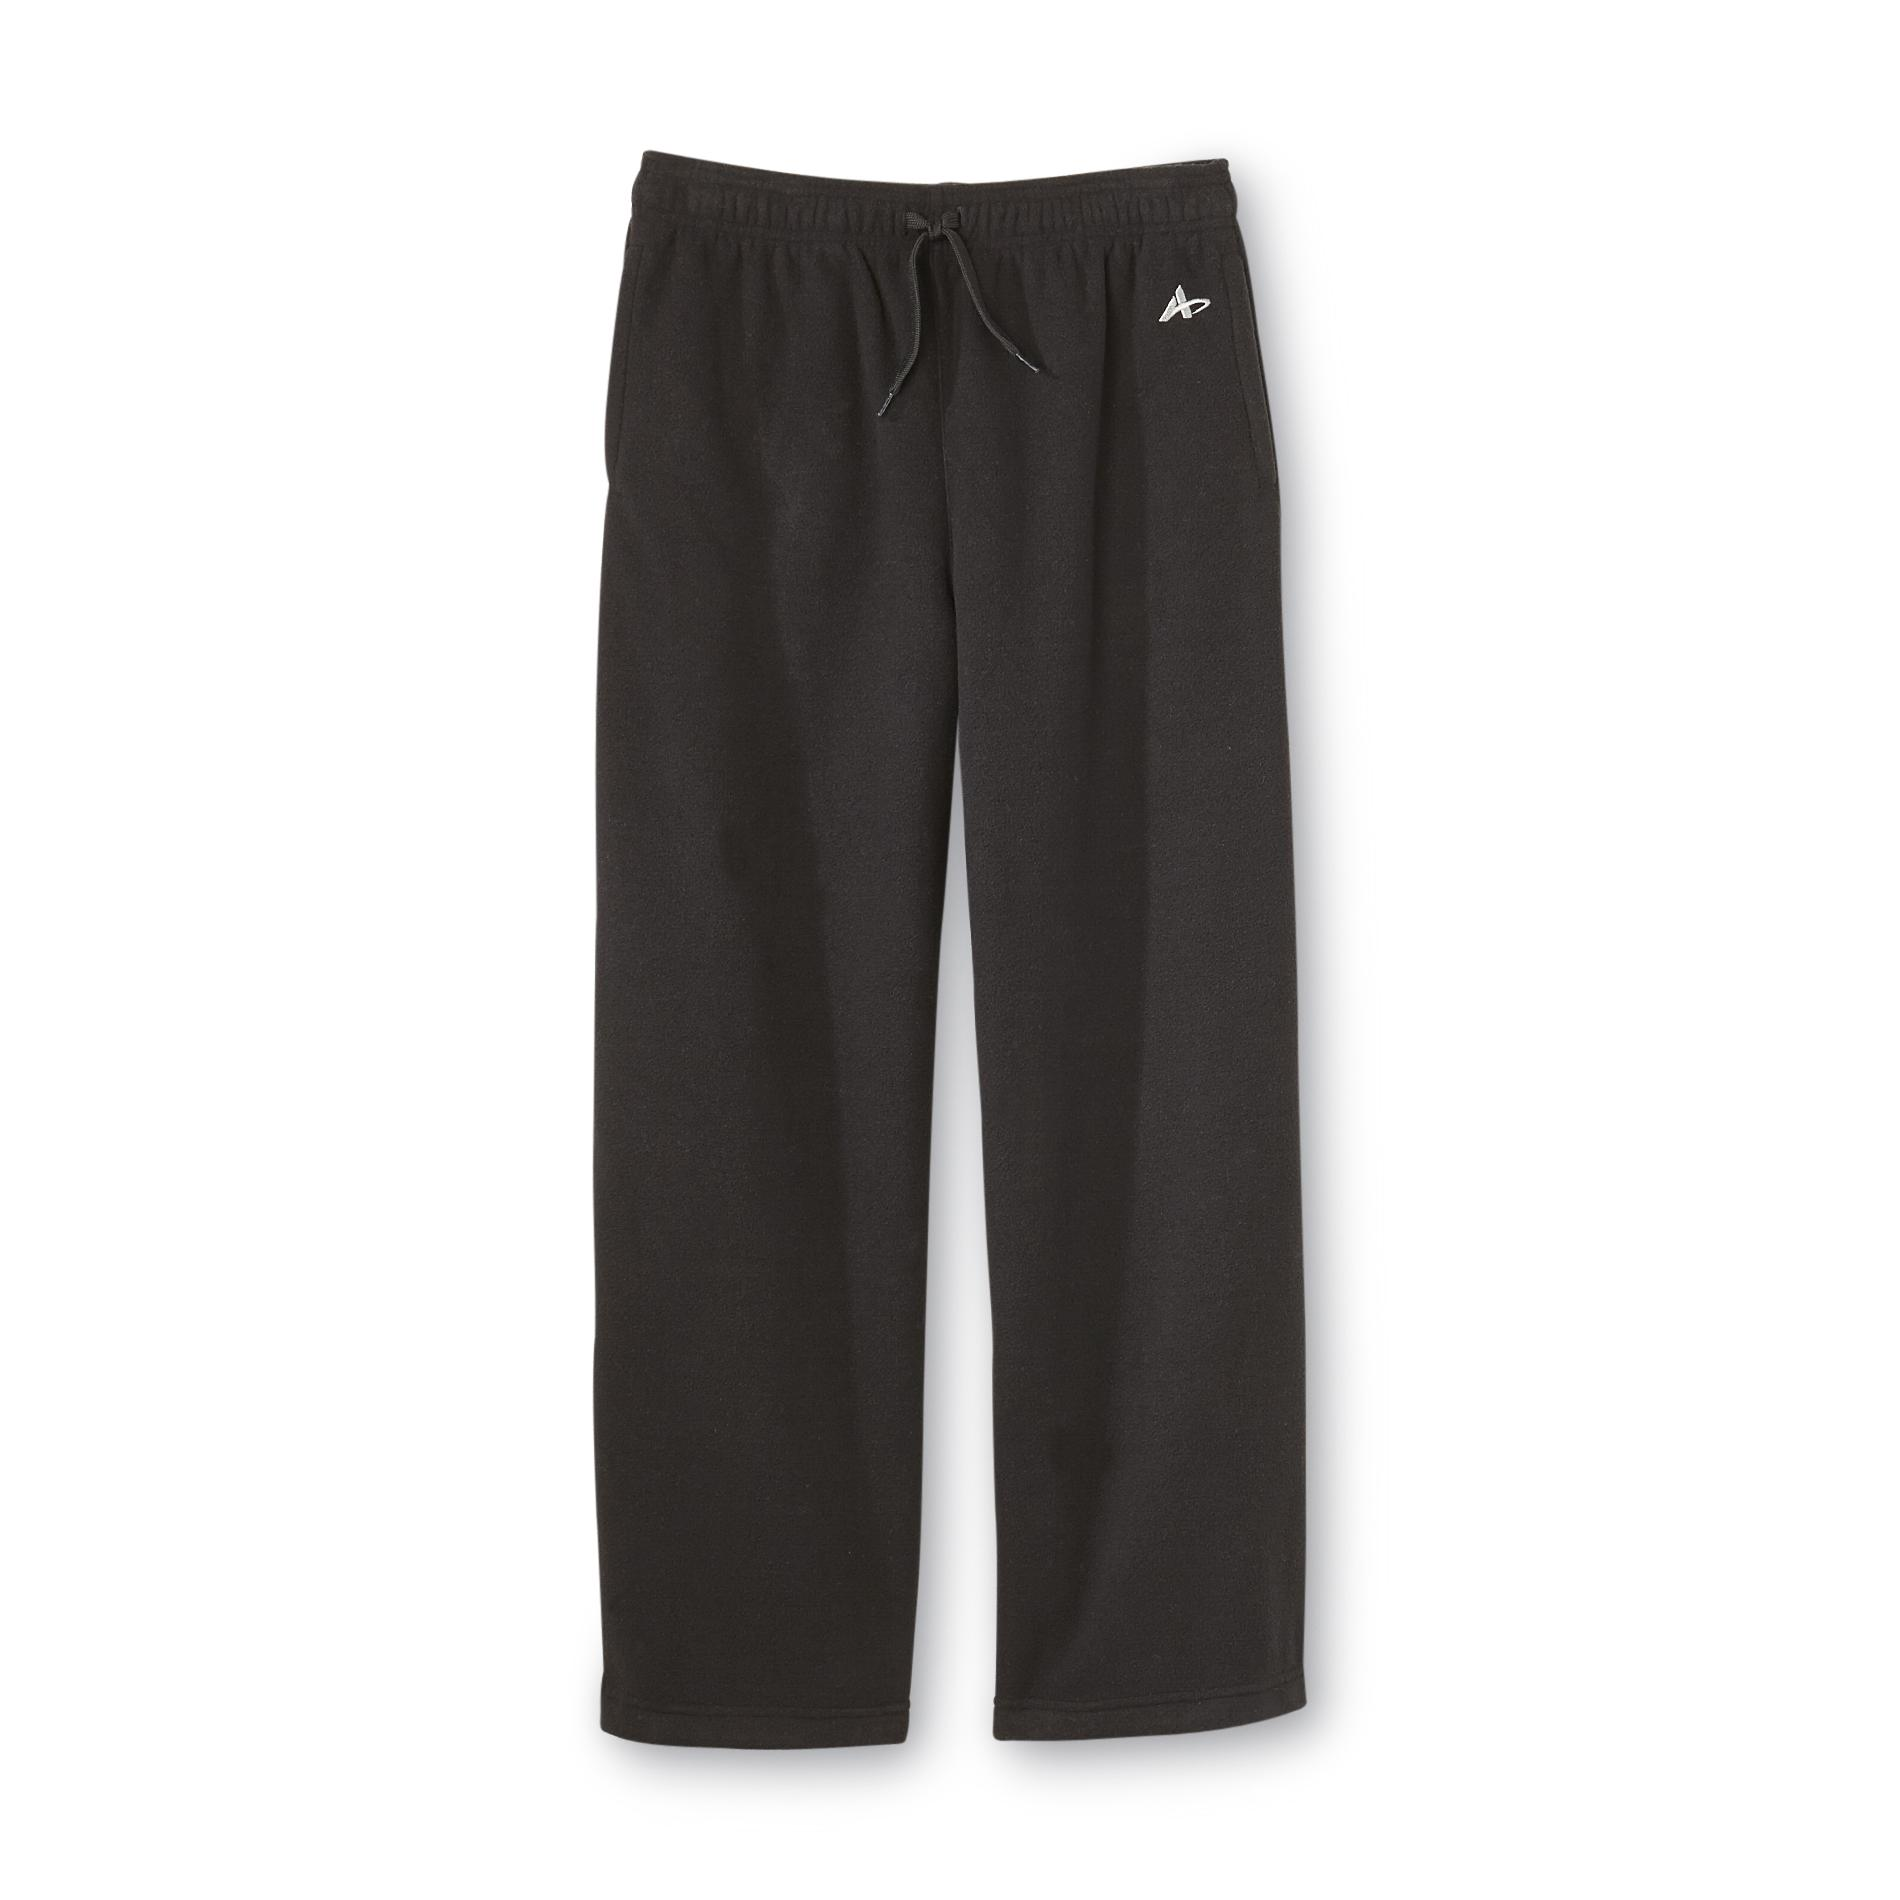 Athletech Boy's Fleece Pants at Kmart.com